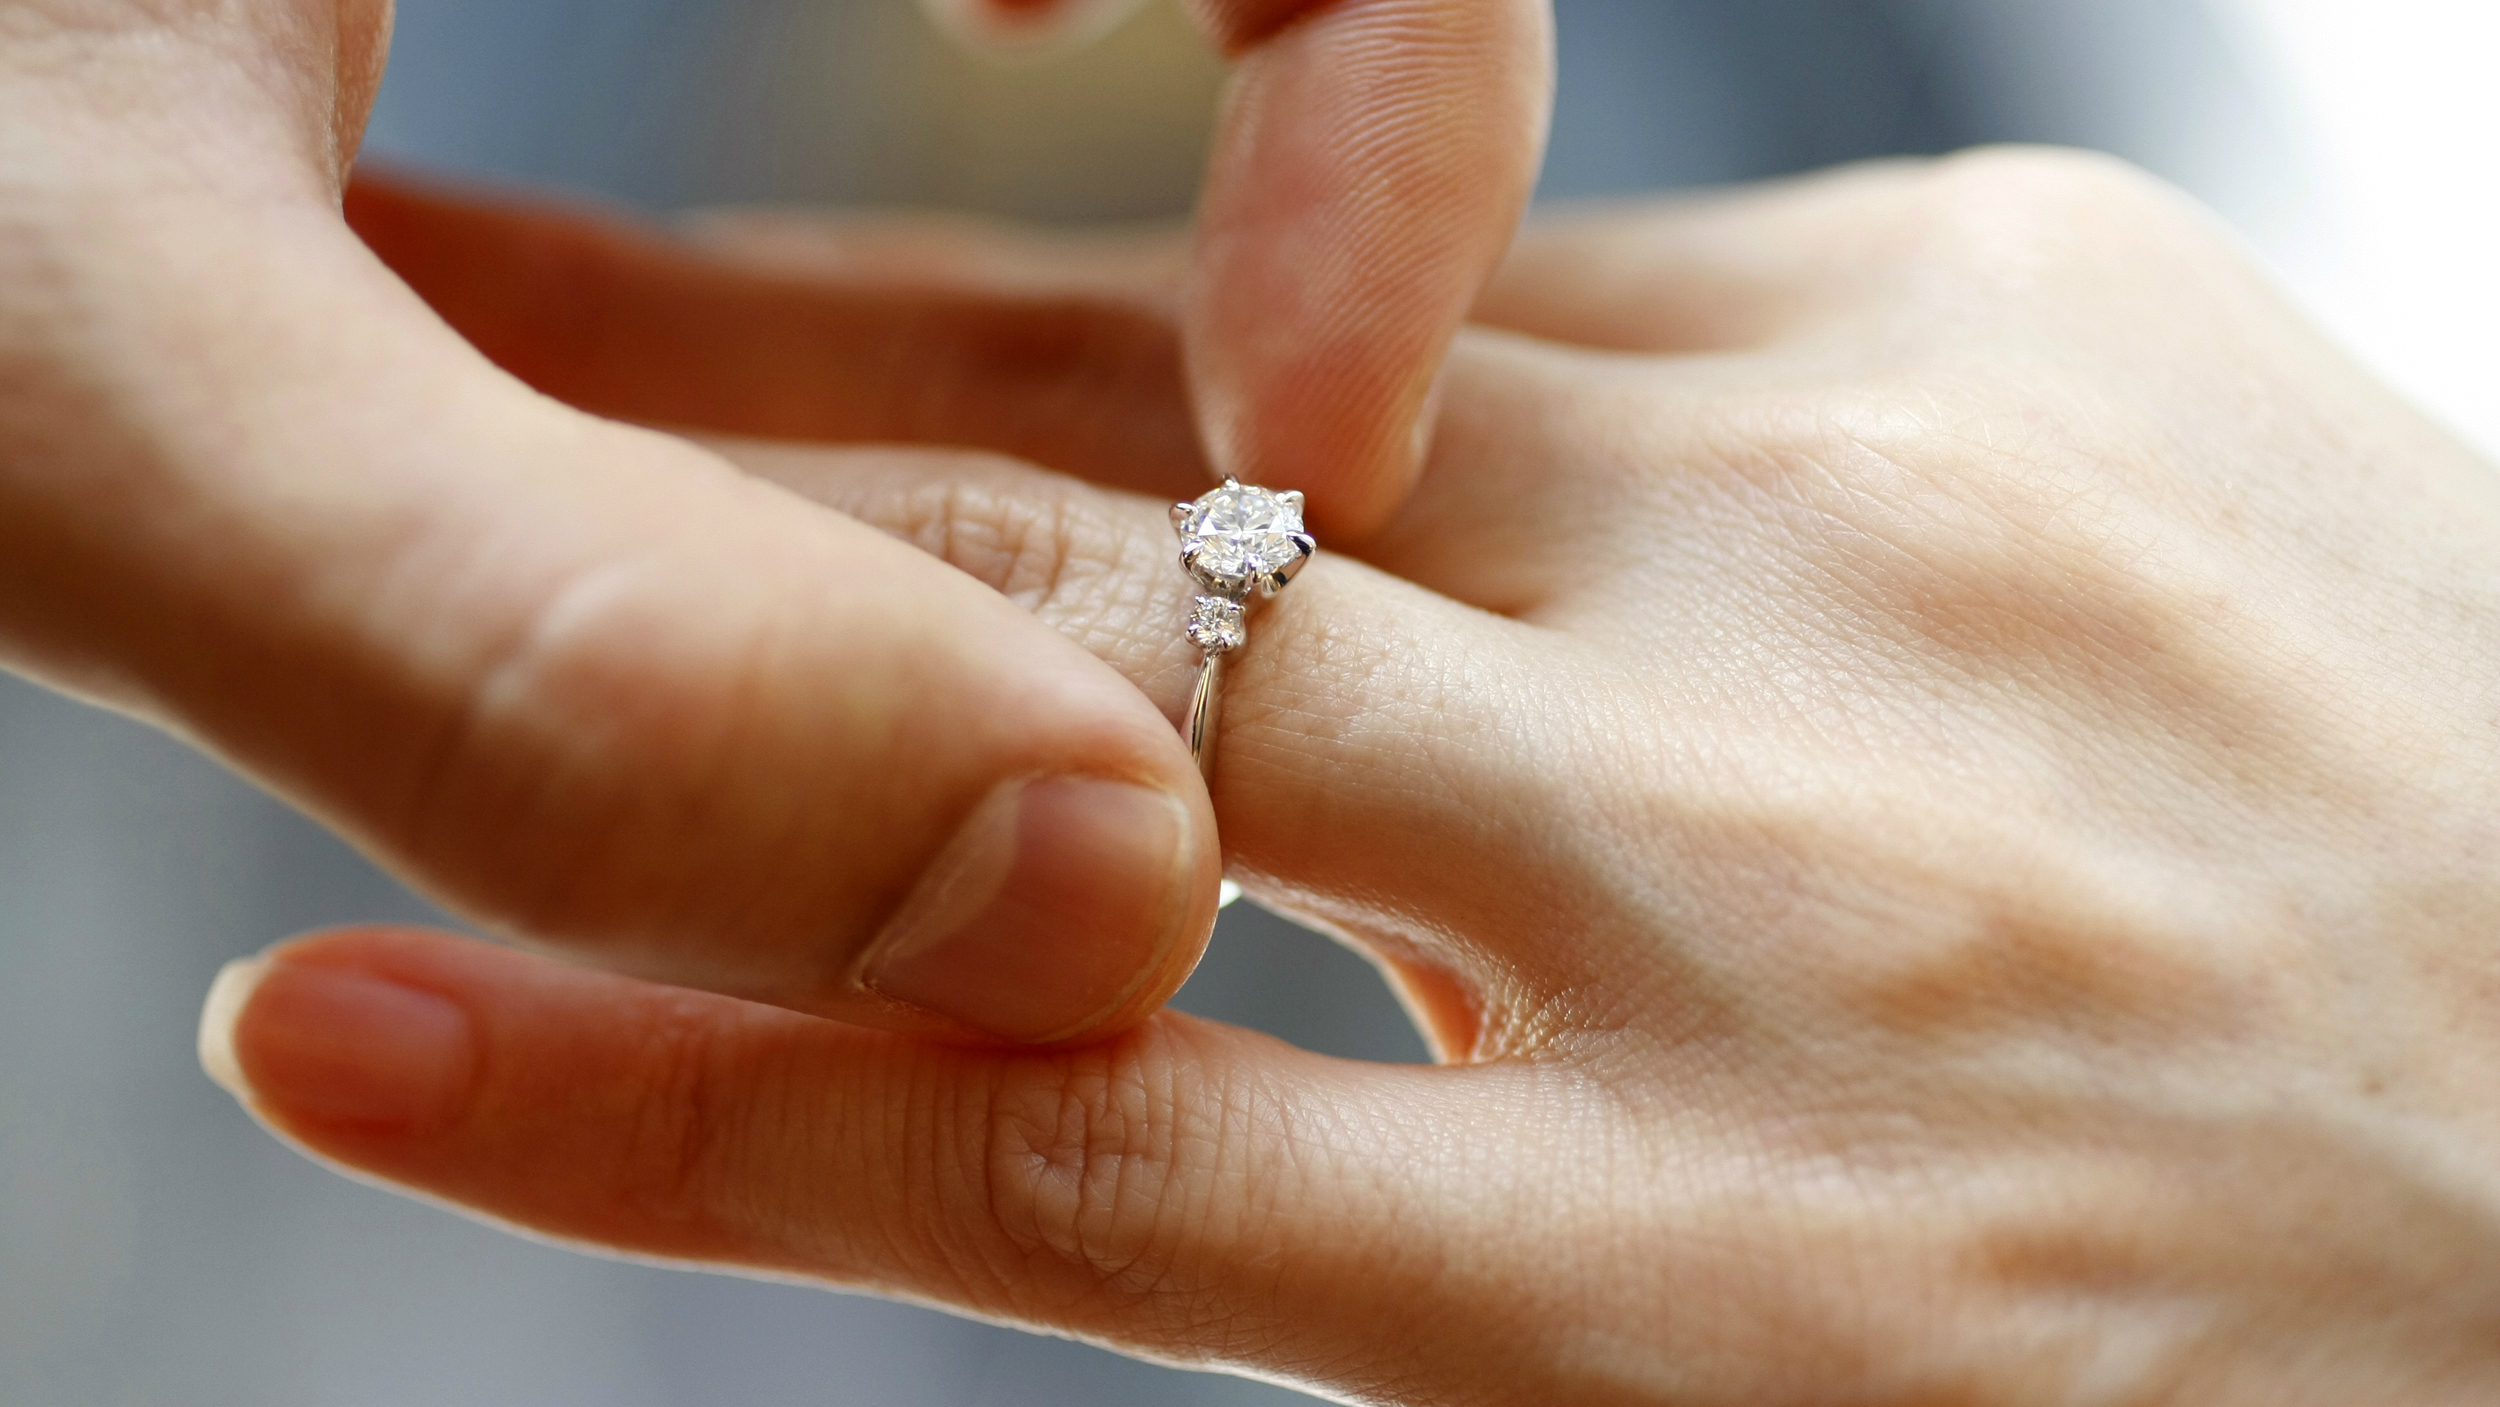 how long does it take to make a synthetic diamond